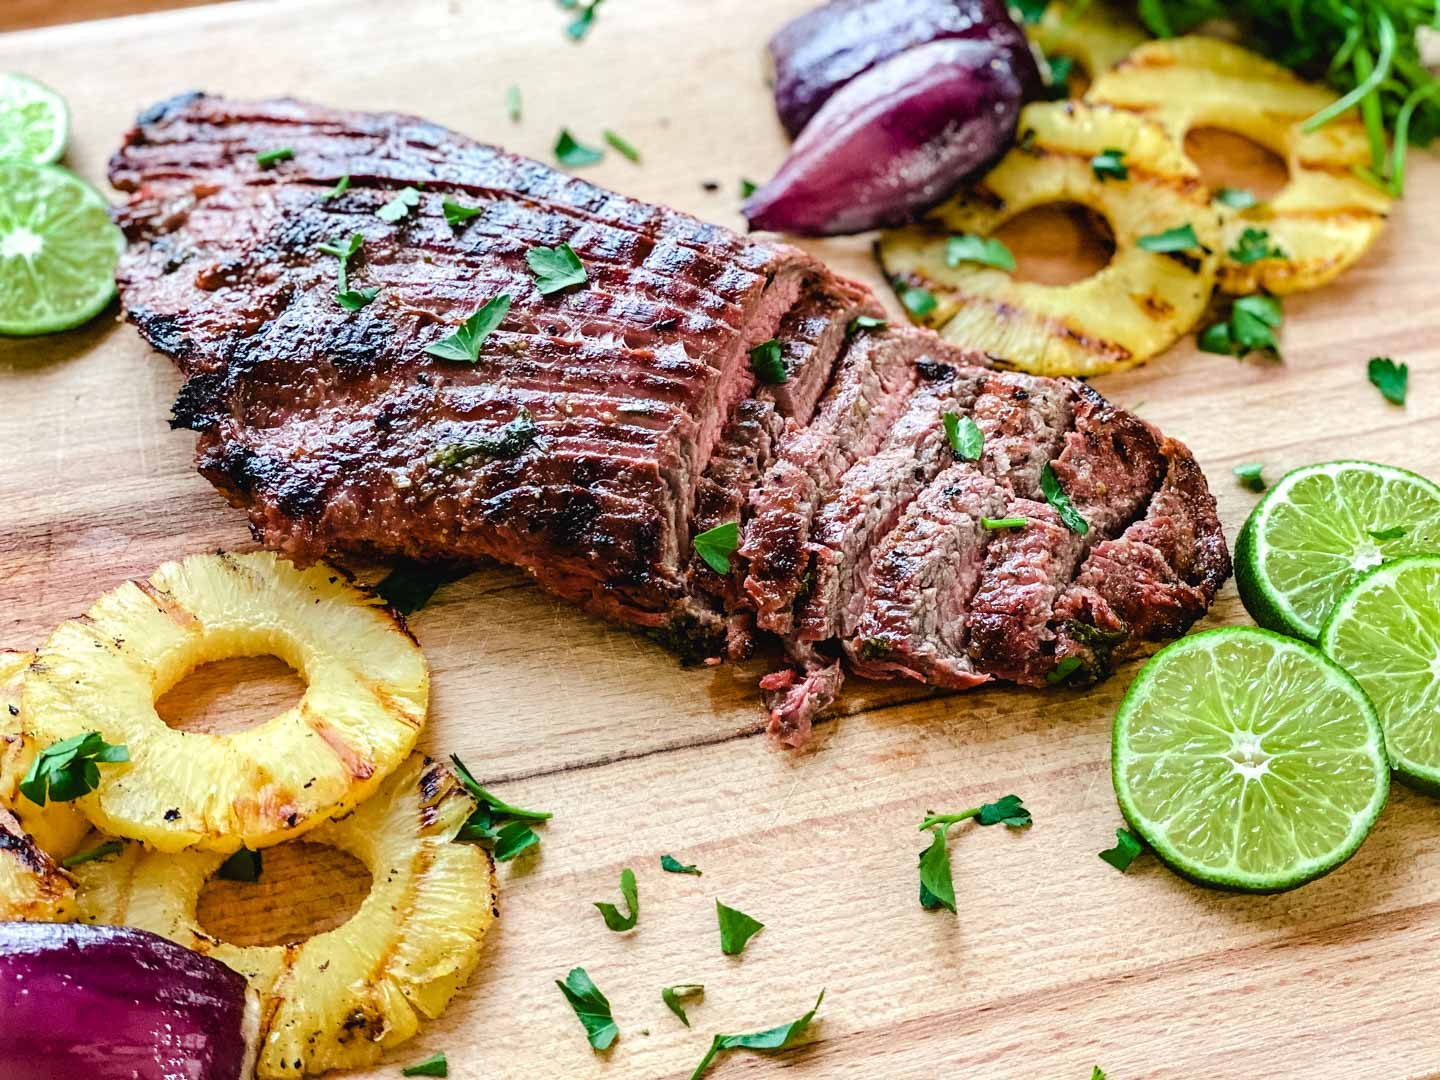 Steak on a wood board with limes, pineapples, red onions and parsley.